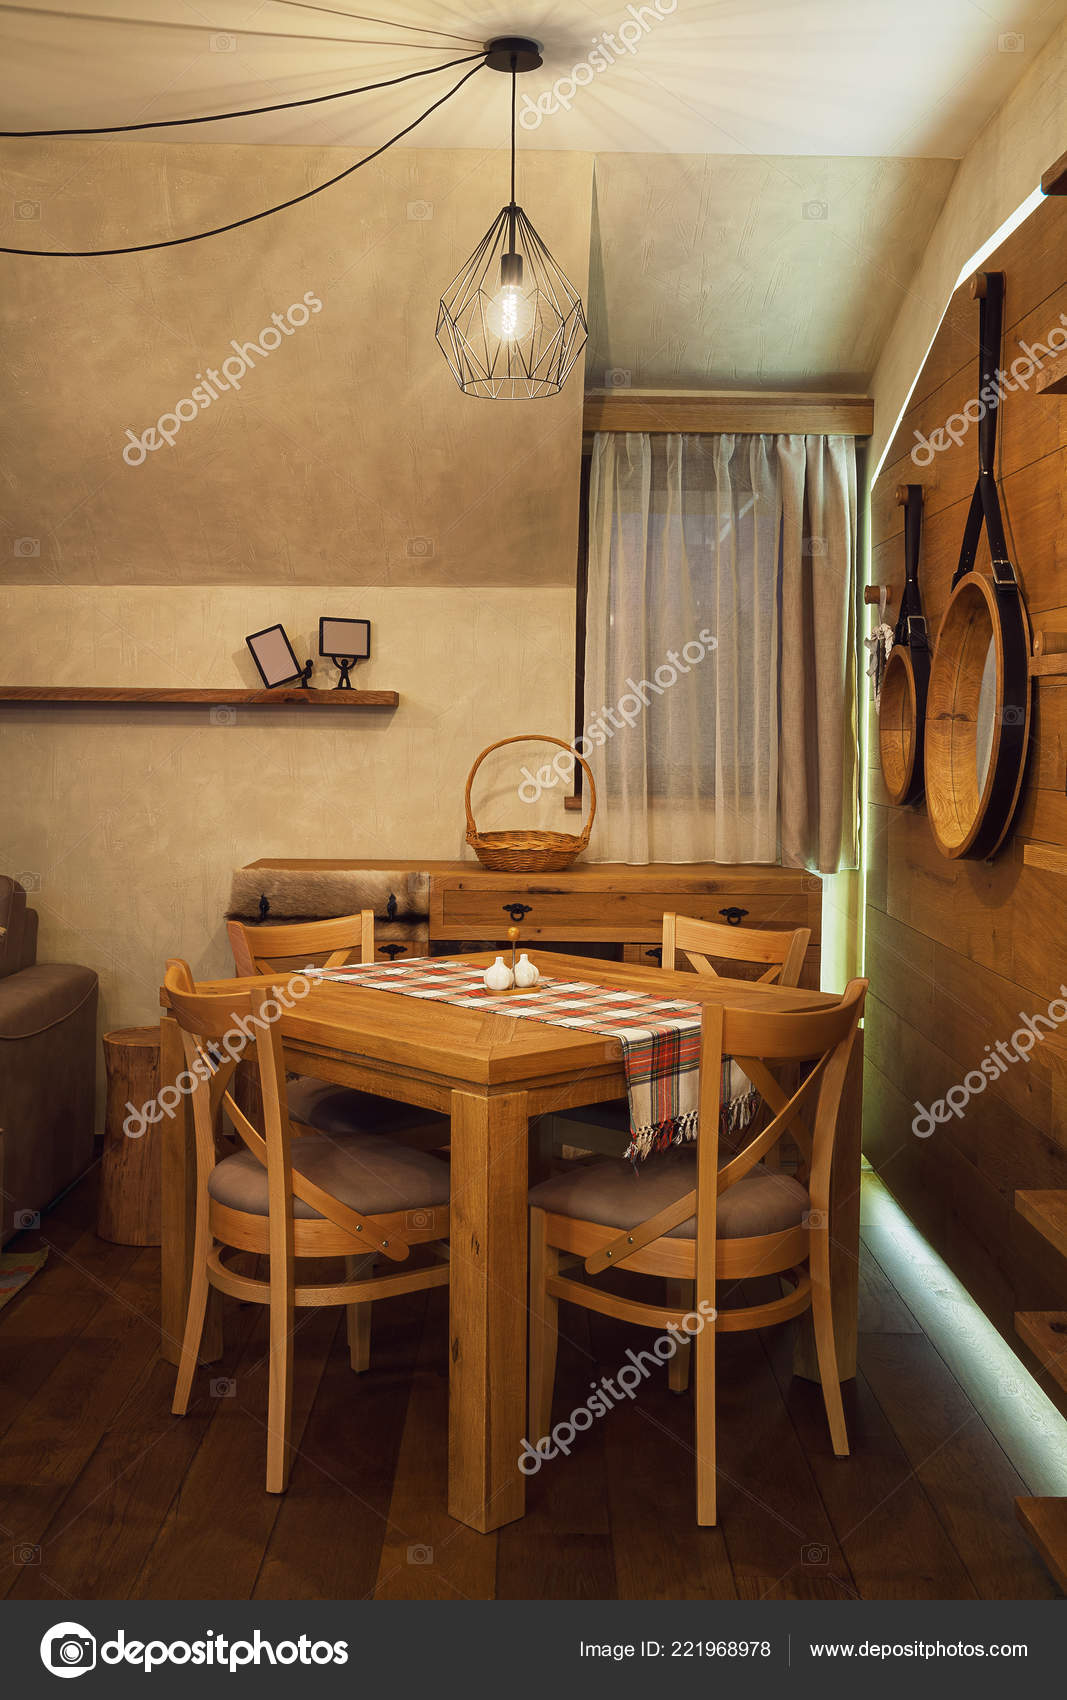 Small Chinese Restaurant Interior Design Ideas Interior Small Apartment Wooden Furniture Decoration Stock Photo C Krsmanovic 221968978